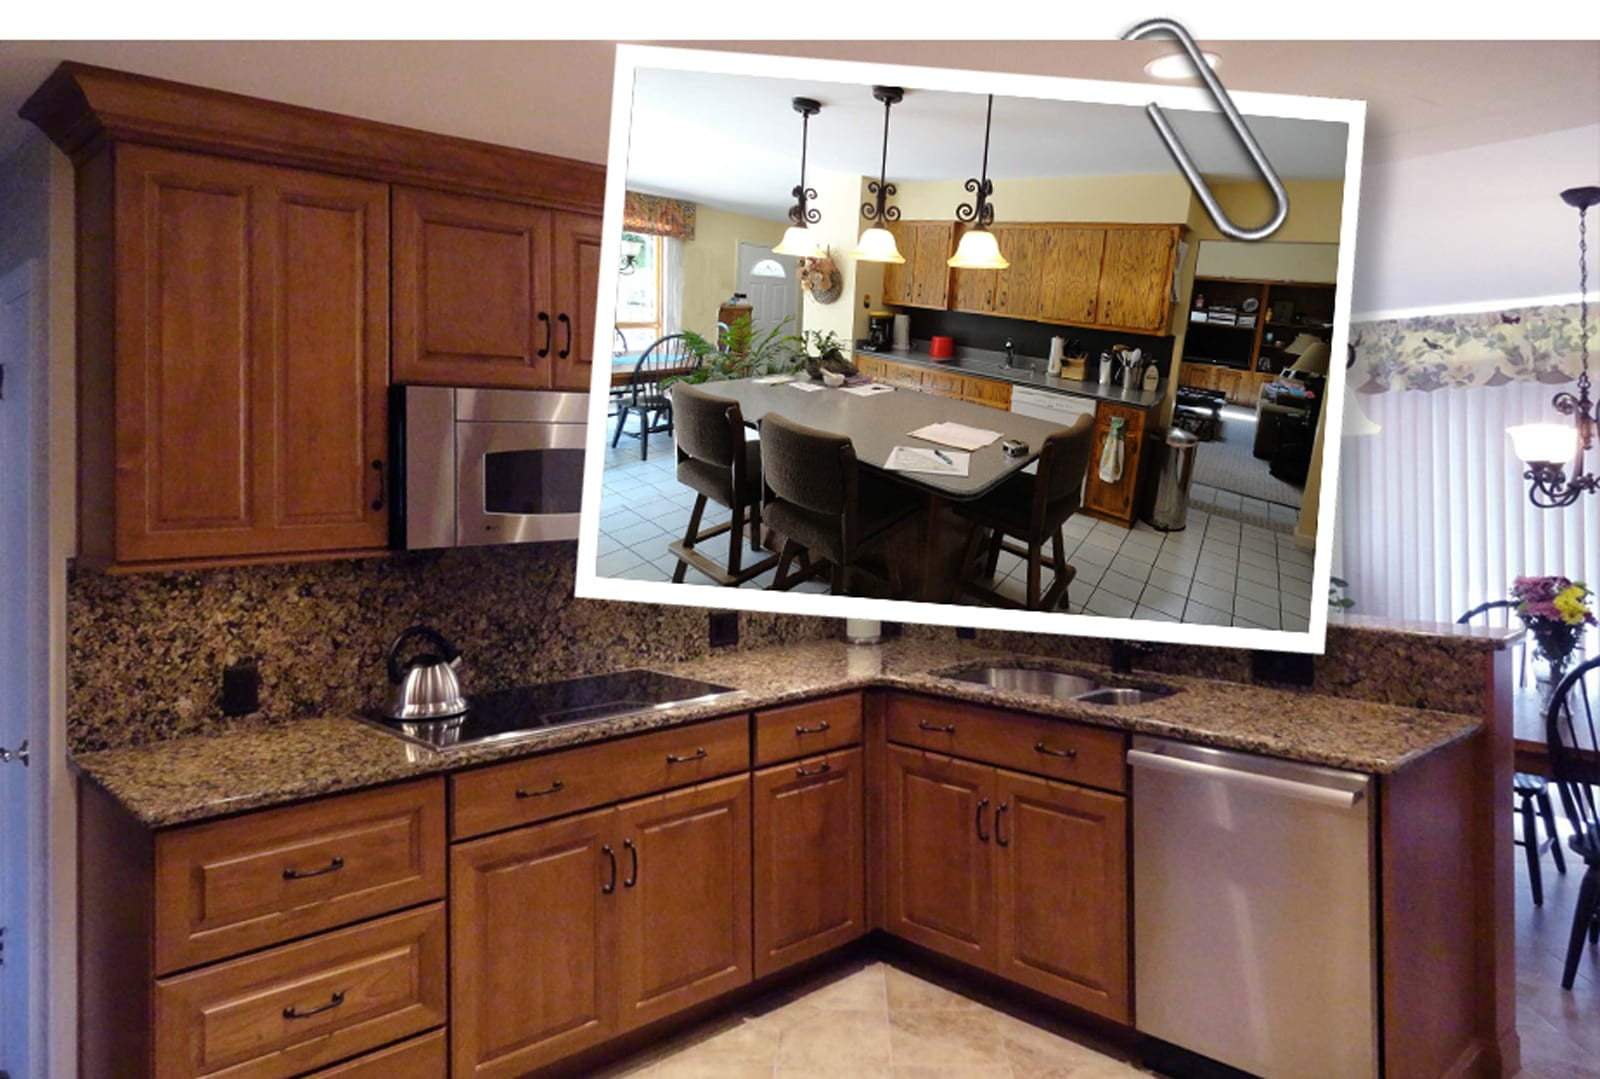 kitchen cabinet cost home depot kohler faucet camp hill 80's renewed - mother hubbard's custom ...